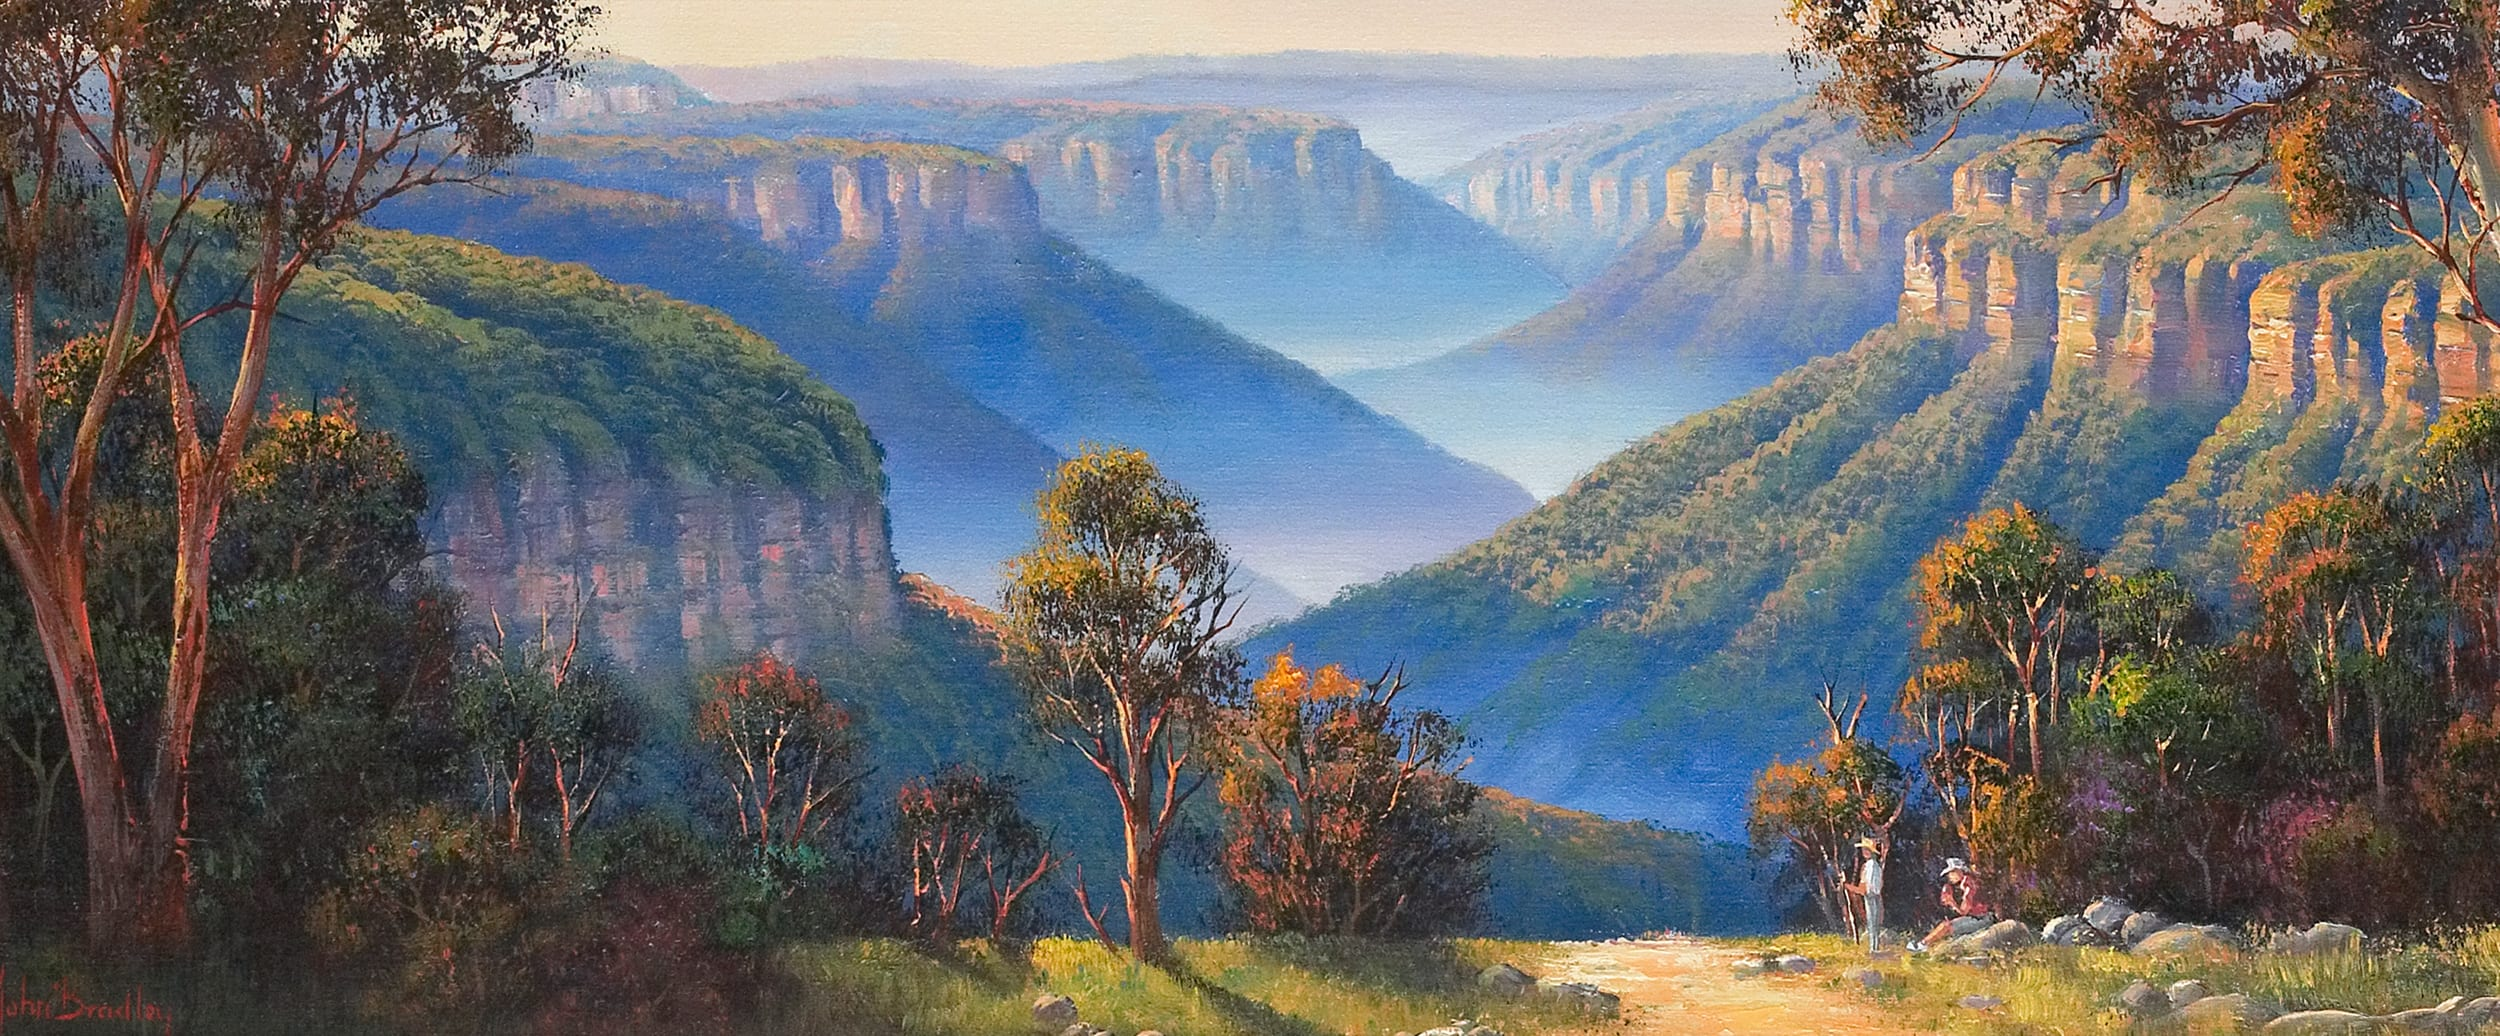 John Bradley Oil Painting Blue Mountains